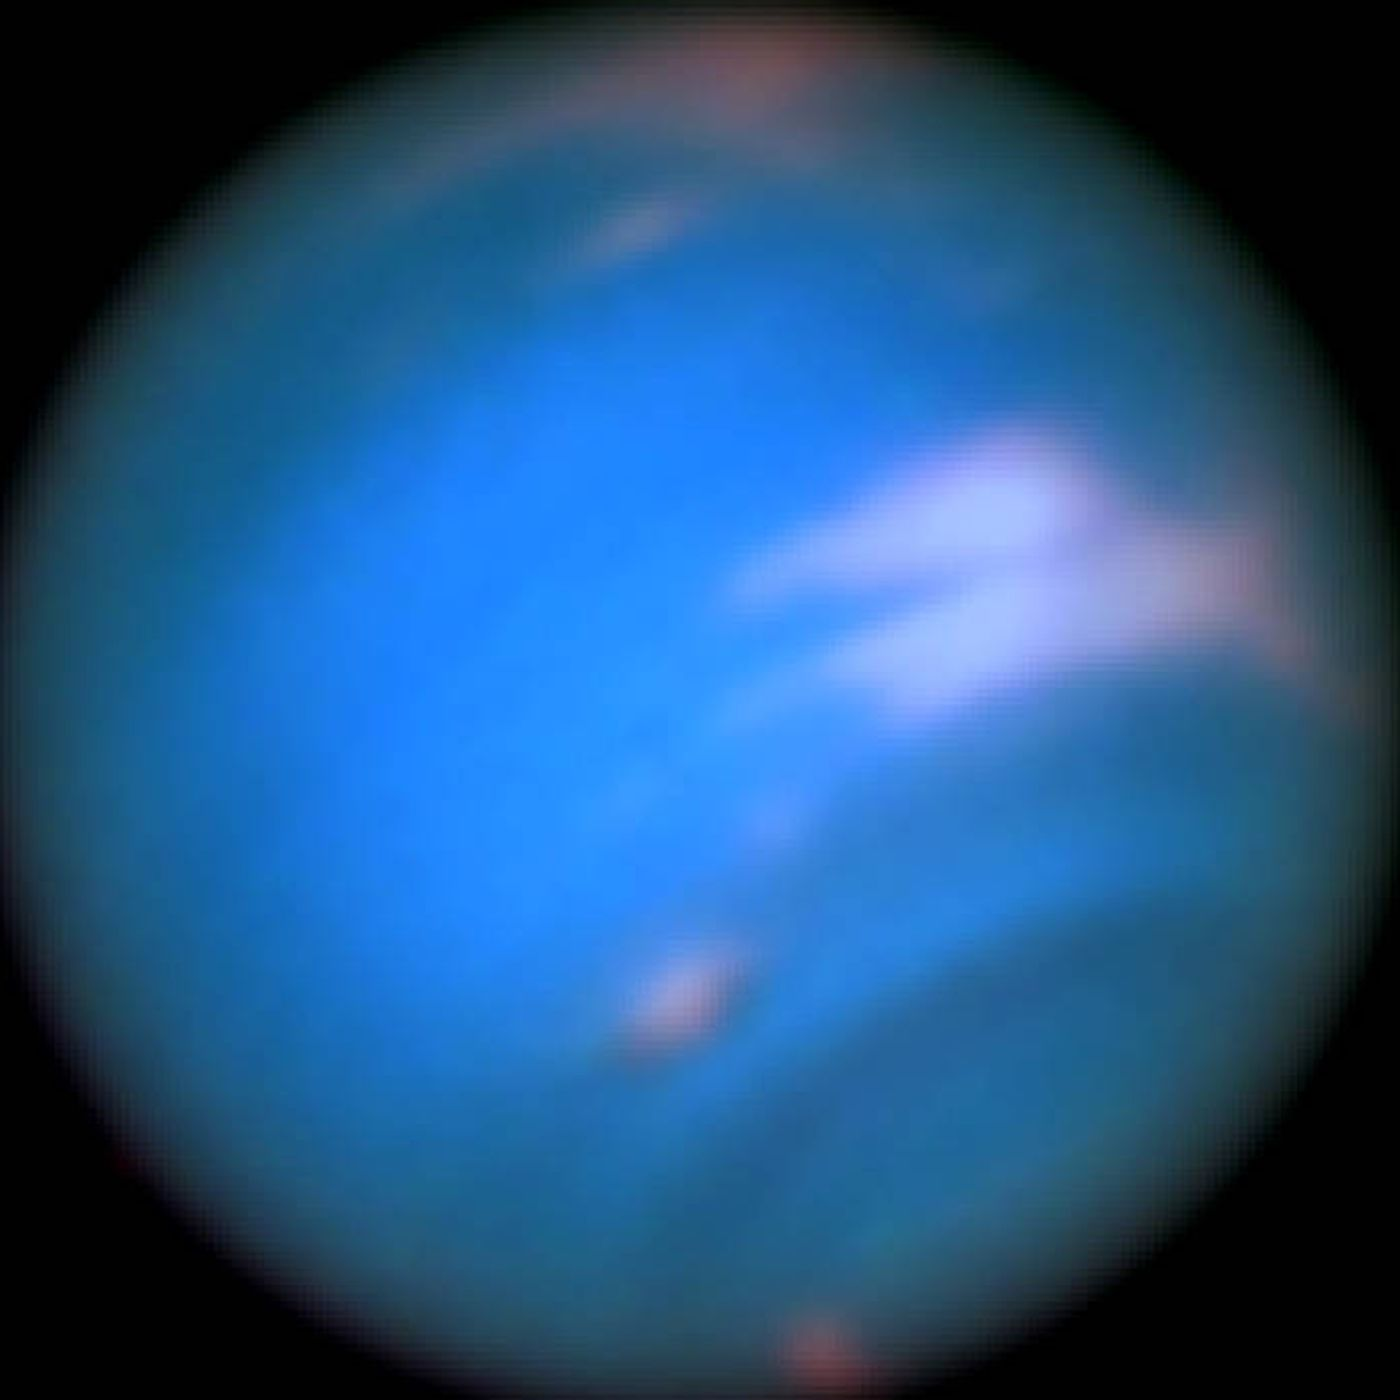 A new 'dark vortex' just popped up on the surface of Neptune - The Verge